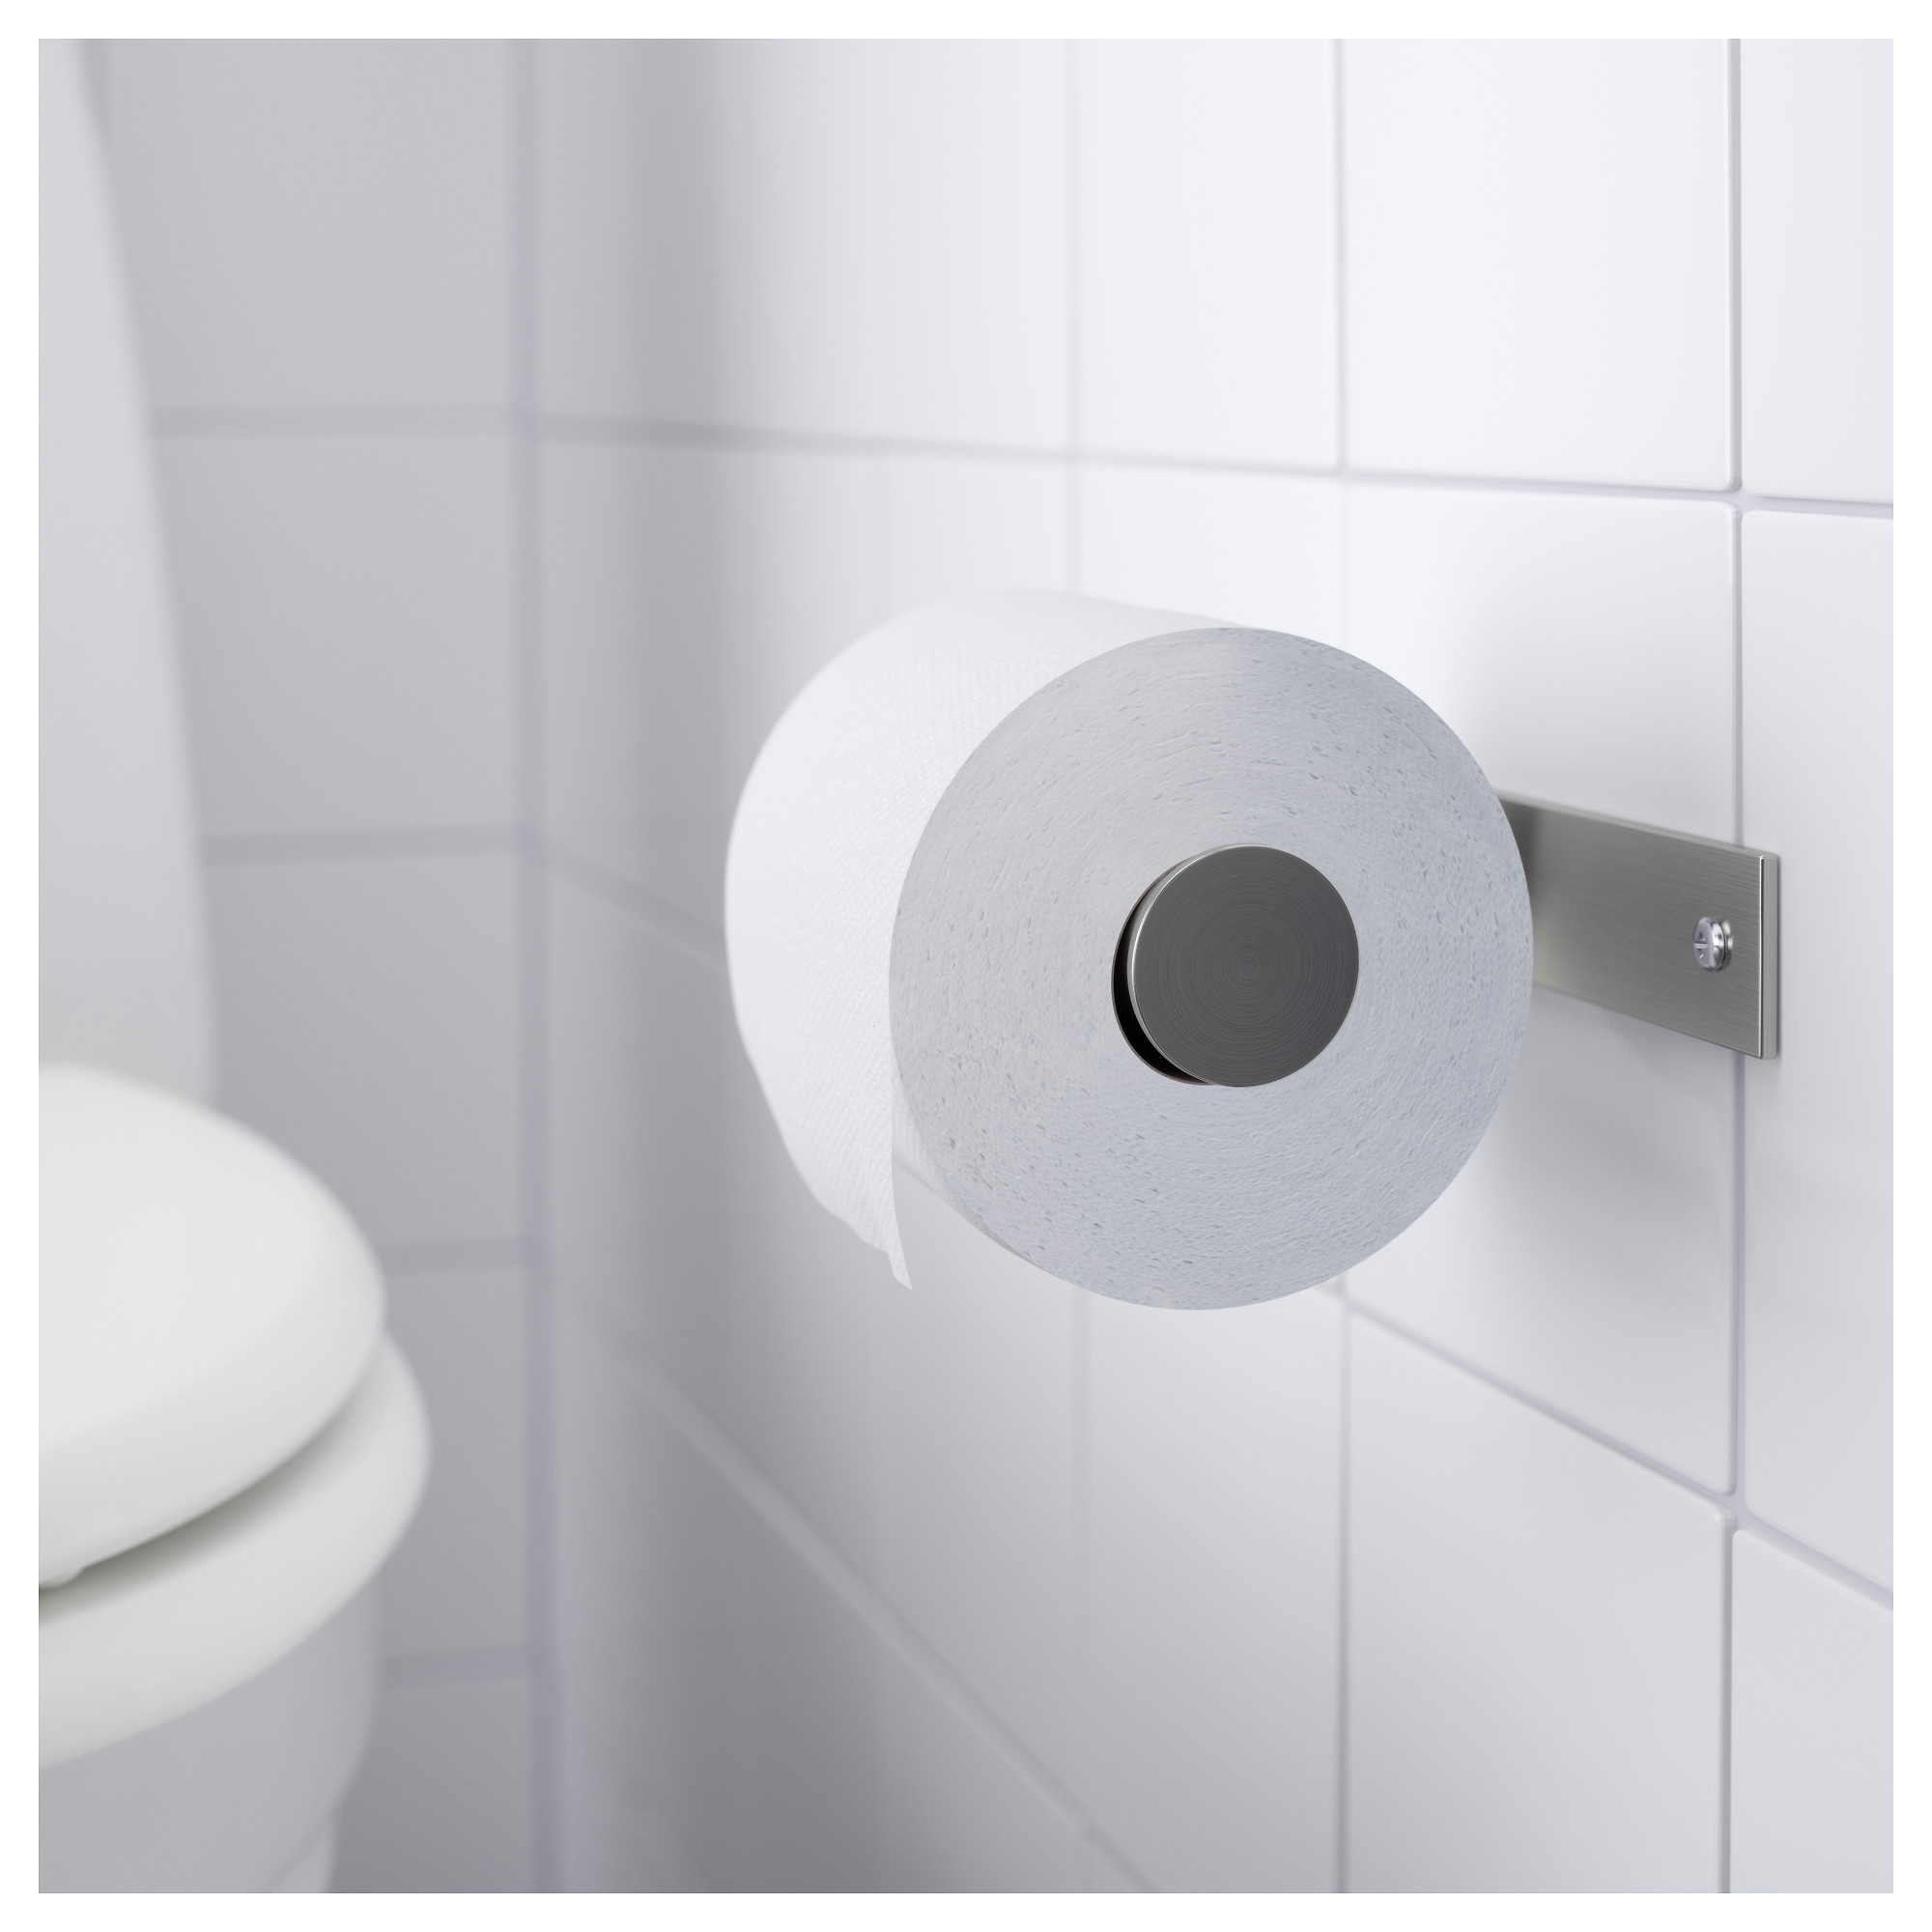 GRUNDTAL Toilet roll holder - IKEA